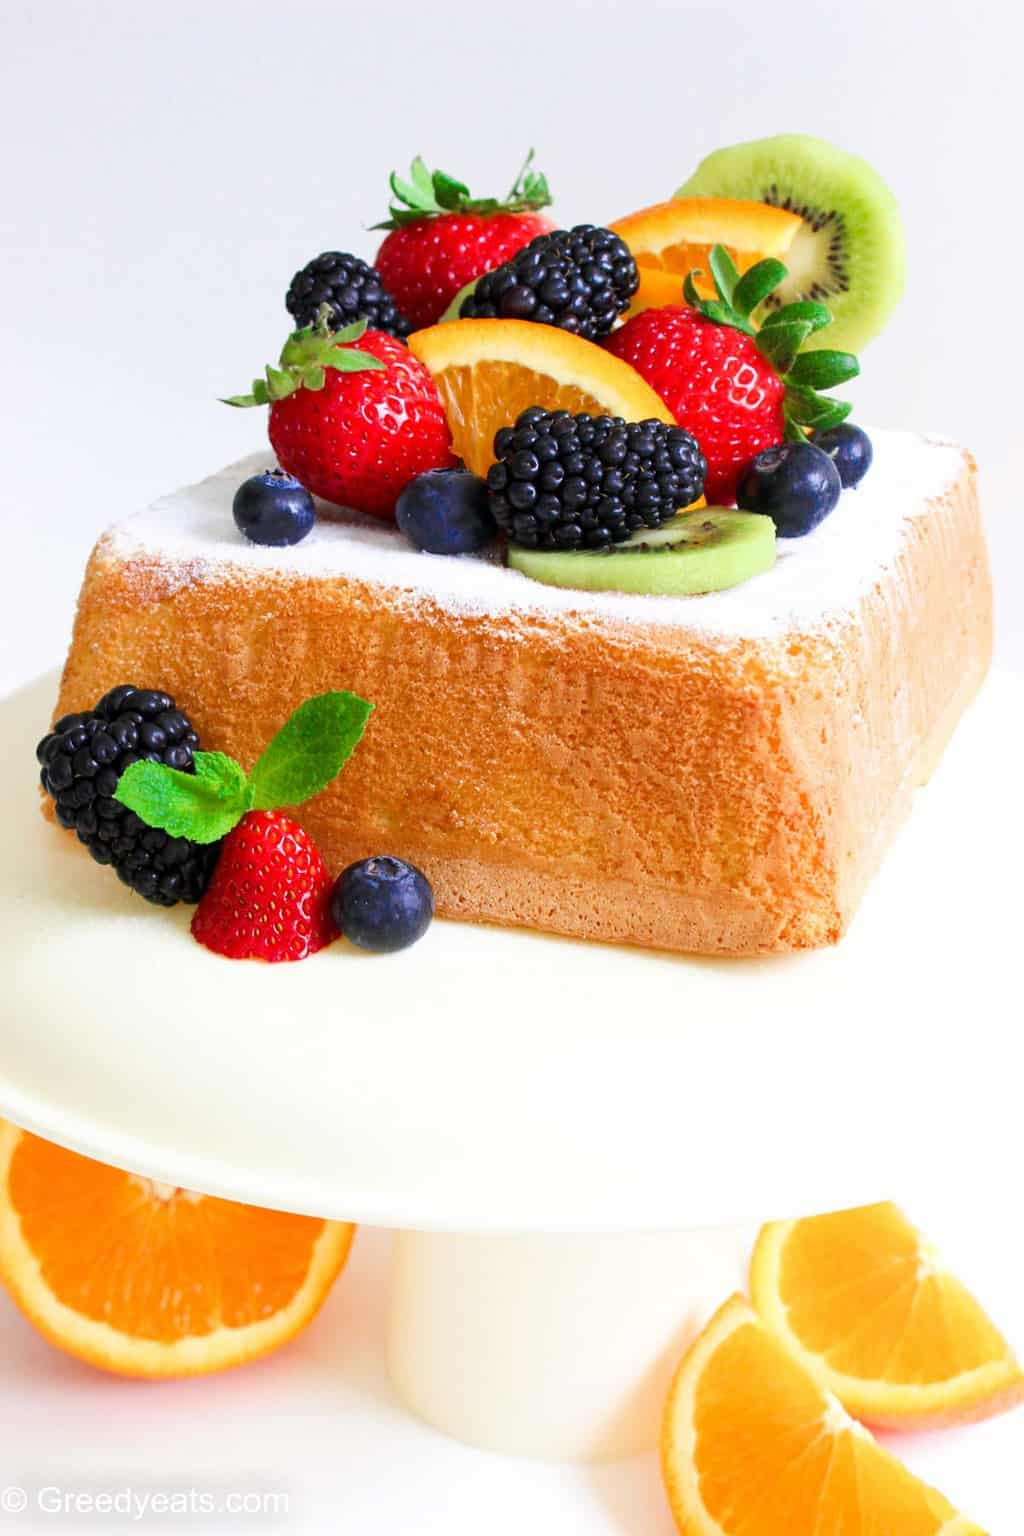 Small Lemon Sponge Cake topped with icing sugar and fresh fruits.